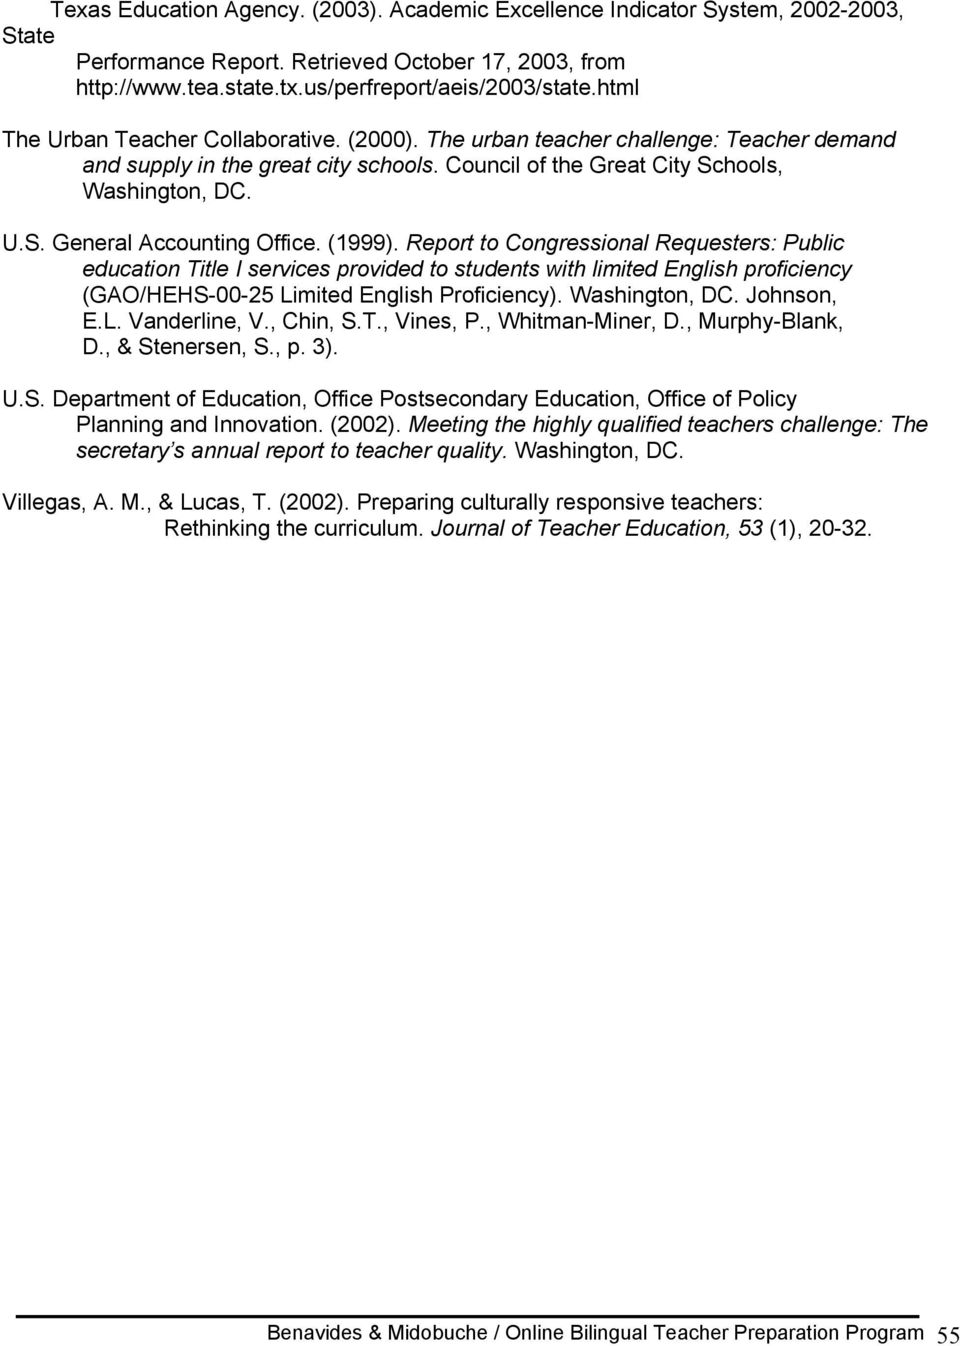 (1999). Report to Congressional Requesters: Public education Title I services provided to students with limited English proficiency (GAO/HEHS-00-25 Limited English Proficiency). Washington, DC.